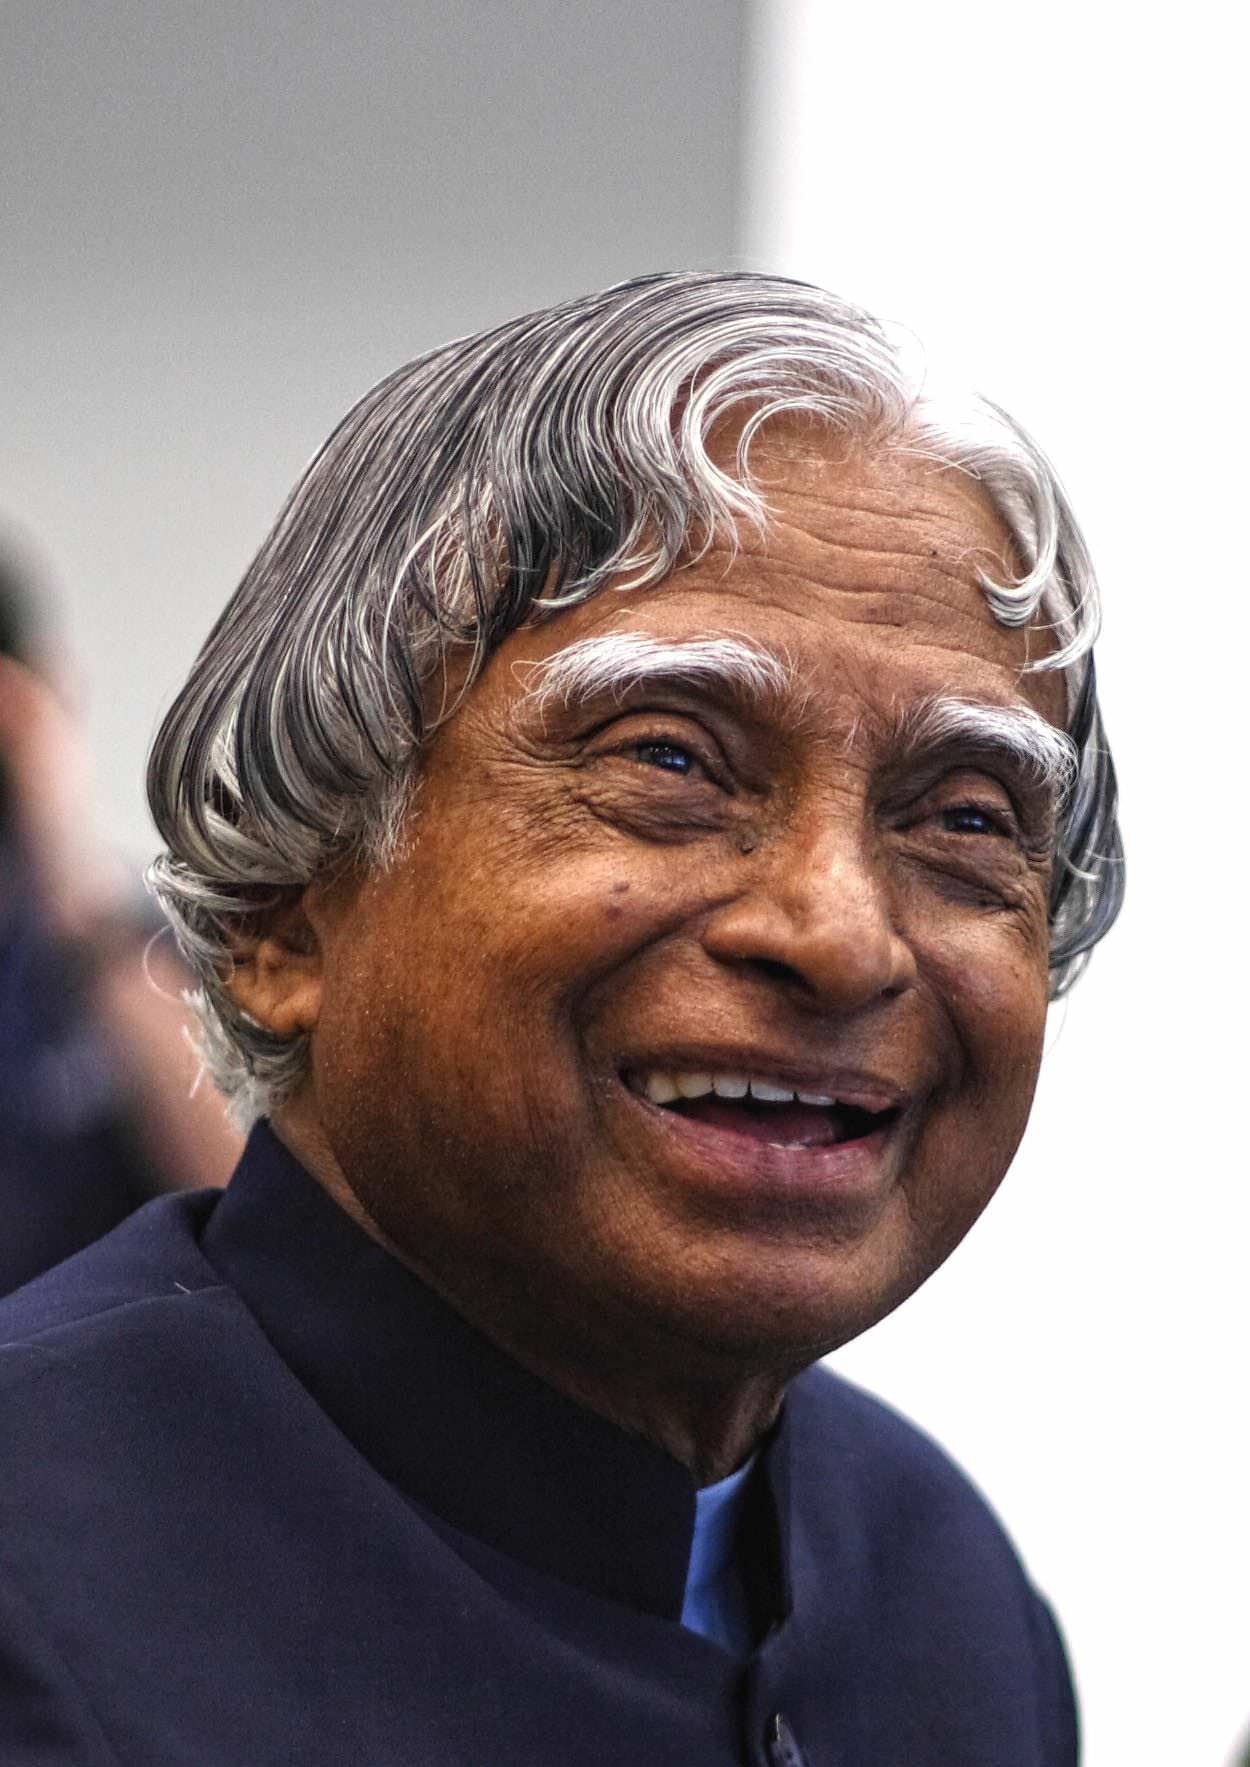 dreams of a developed india speech A nation where the rural-urban divide has been reduced to a thin lineall parts of india become developed inspiring speech: apj abdul kalam's vision for.